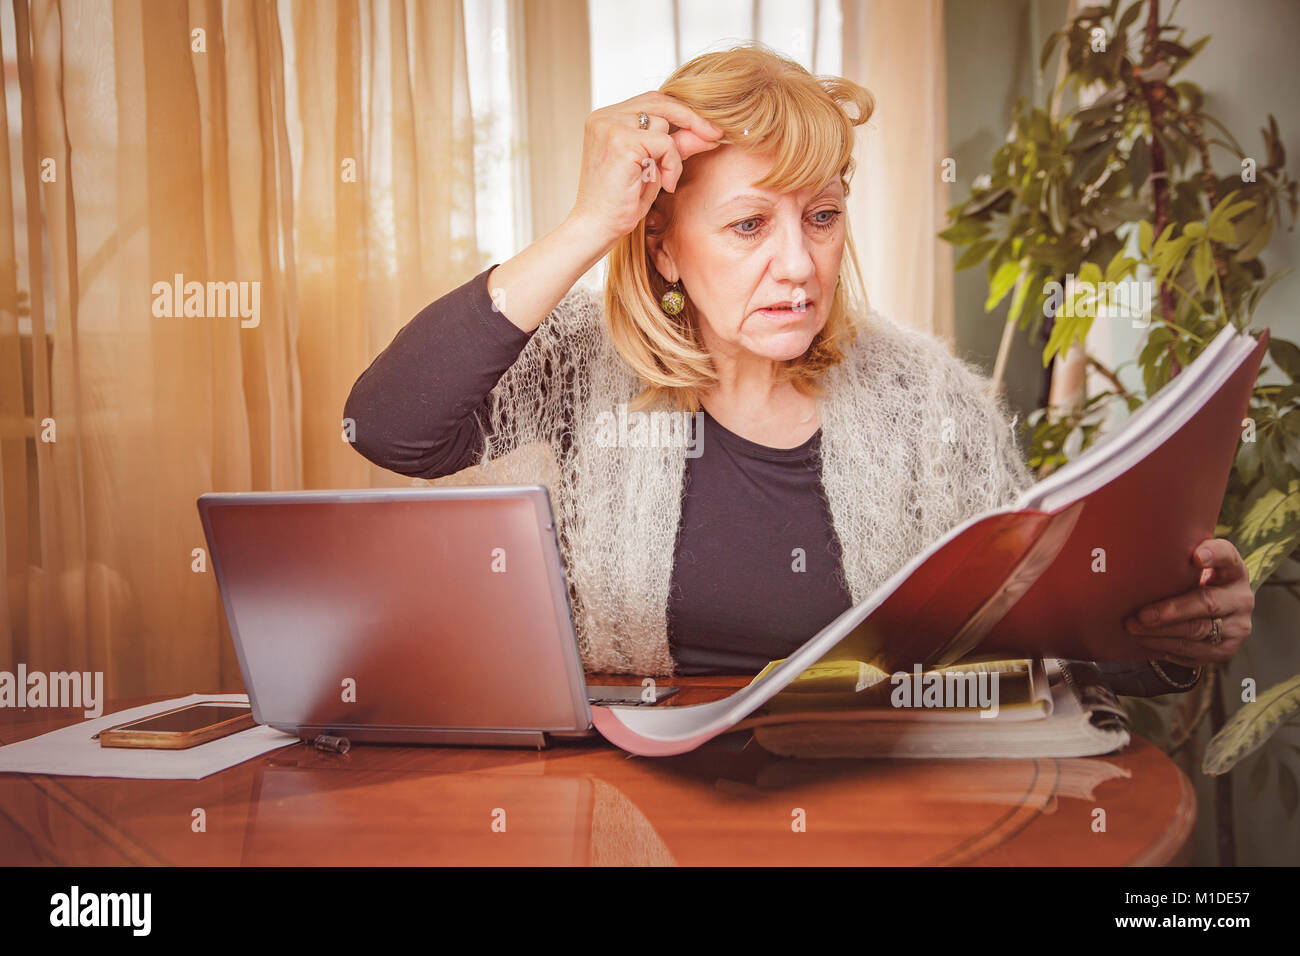 Something's not right - Stock Image